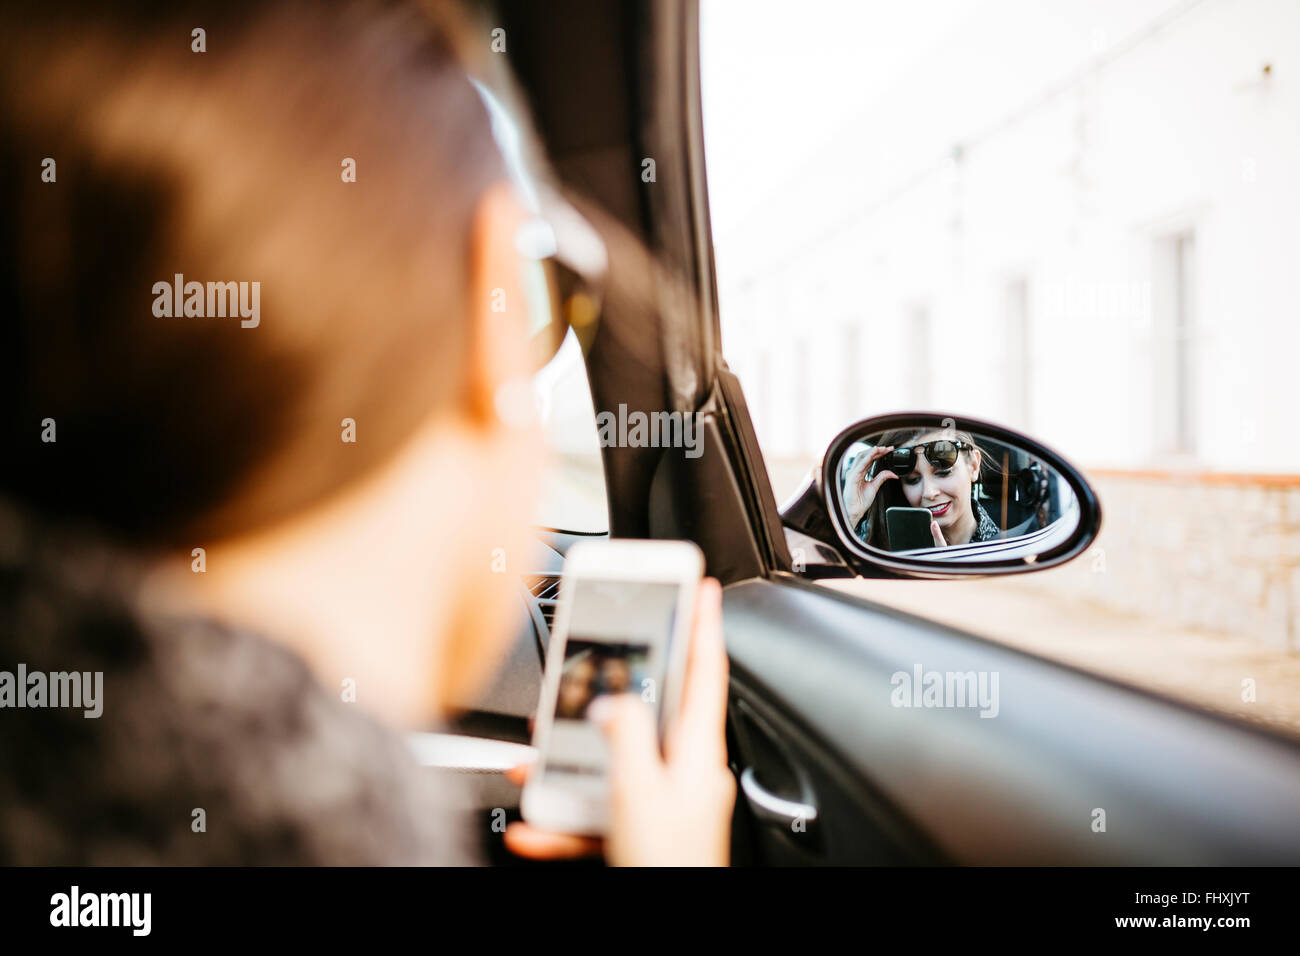 Female front passanger in car using smart phone - Stock Image